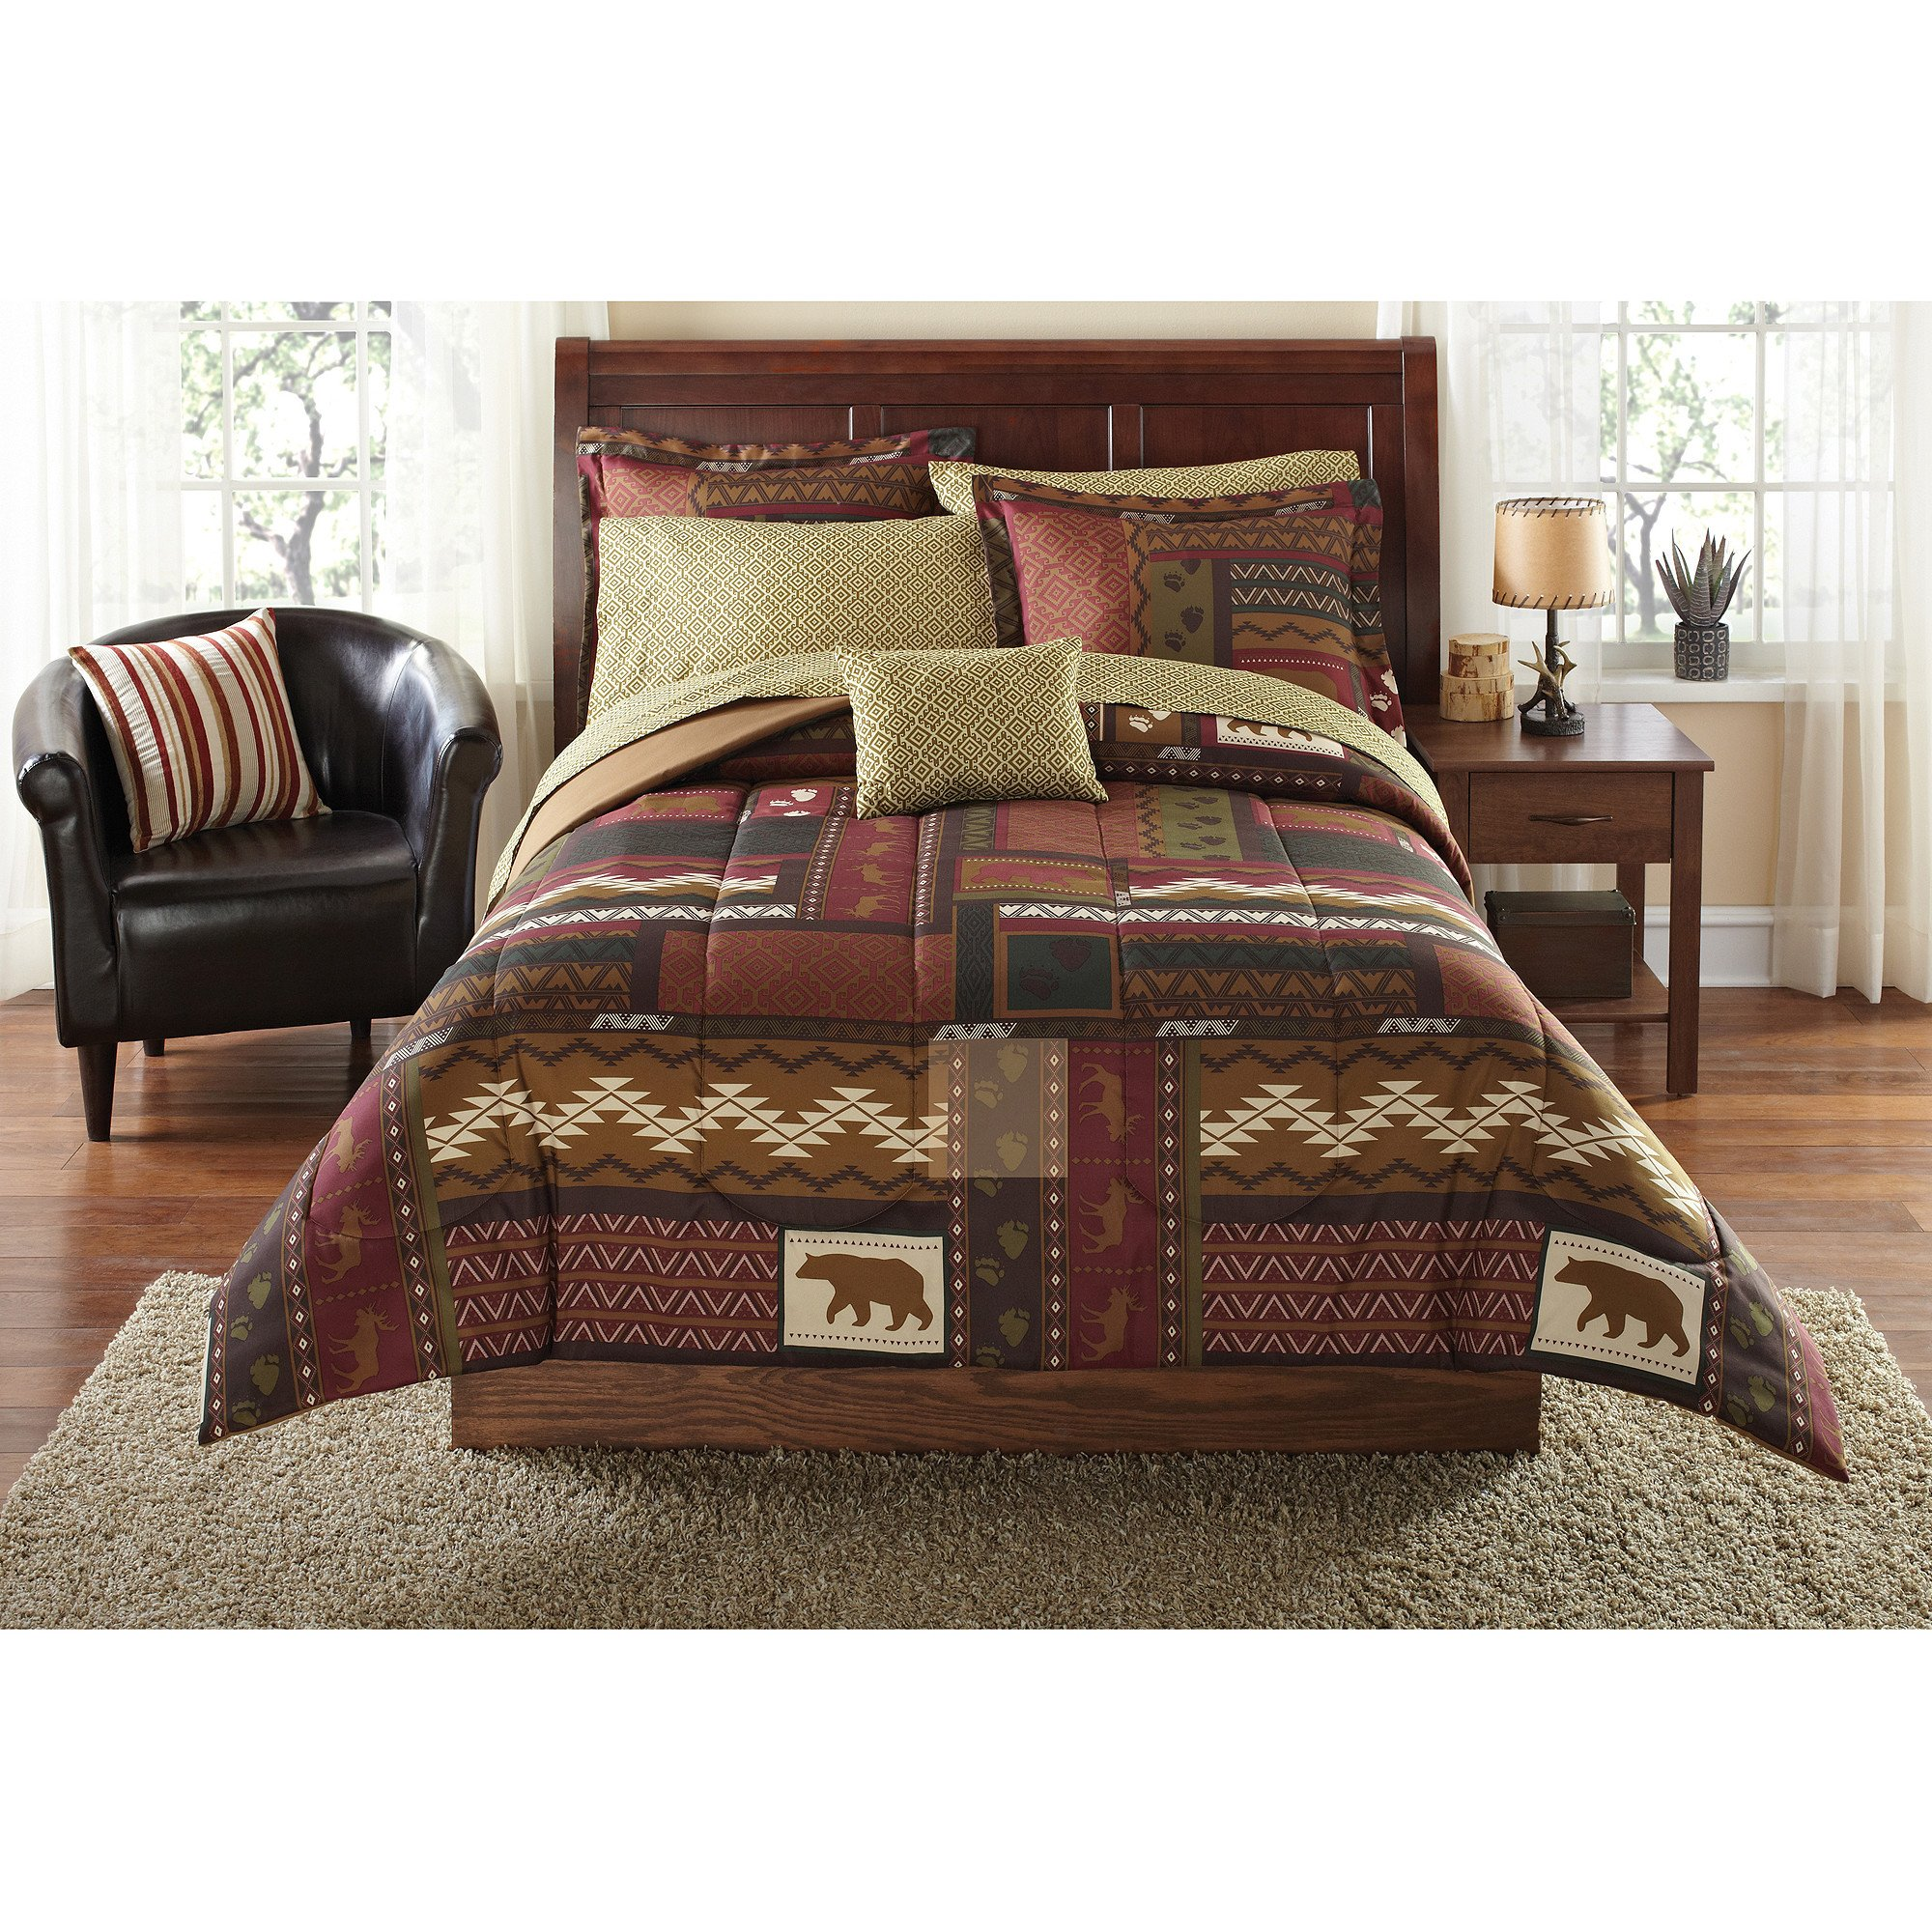 8 Piece Multi Color Patchwork Geometric Moose Printed Comforter Set Twin Twin Xl, Dark Brown Golden Woods Rustic Lodge Cabin Animal Wildlife Bear Footprint Features Kids Bedding Teen Bedroom Polyester